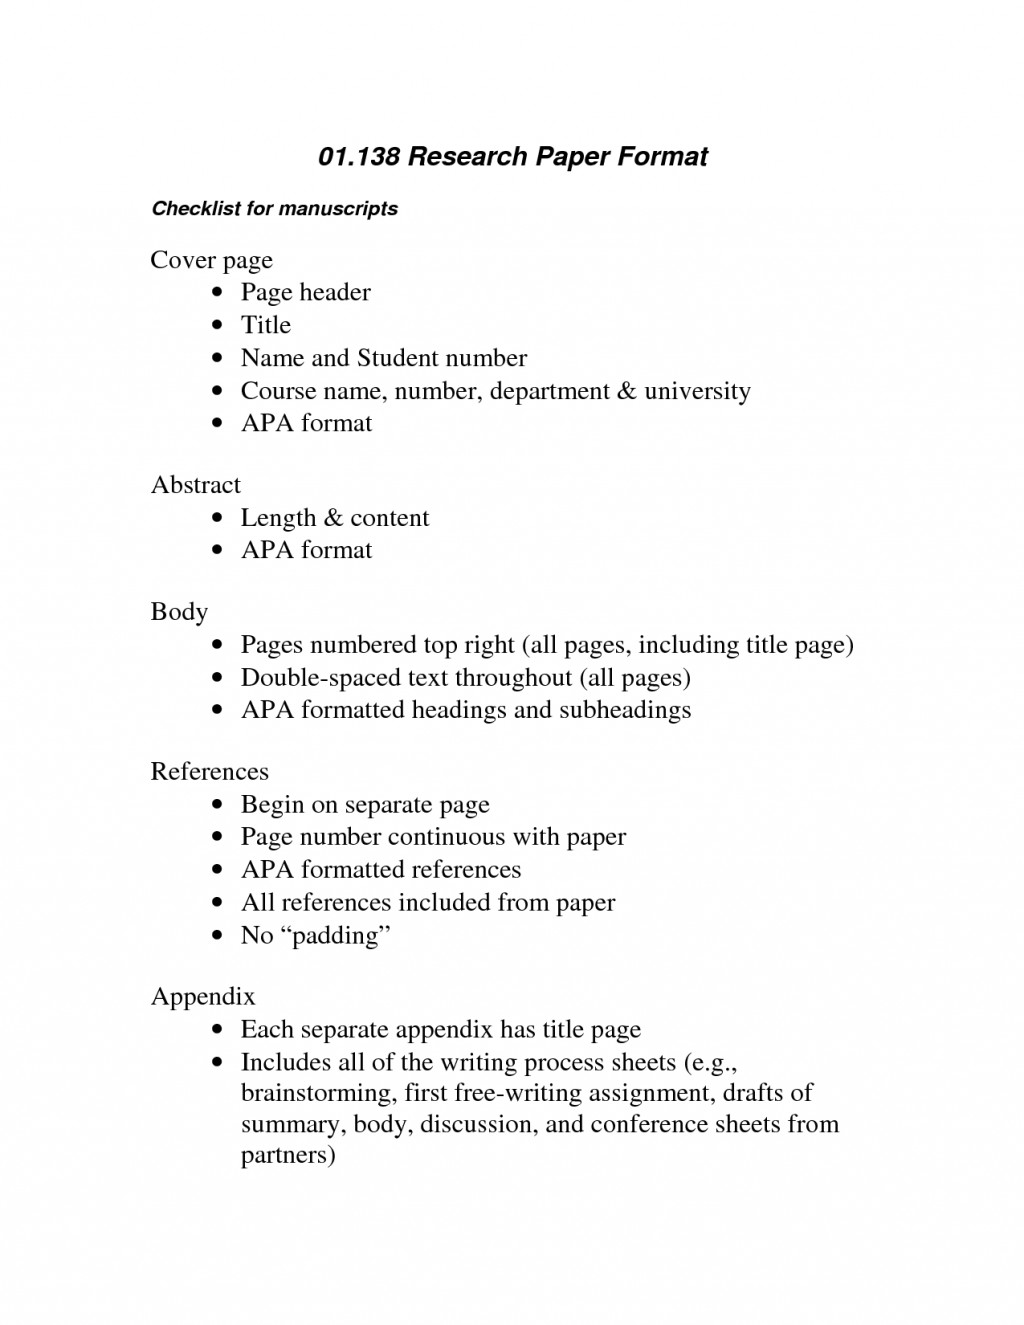 006 Research Paper Sample Apa Format Wonderful How To Write A In 6th Edition Example Large